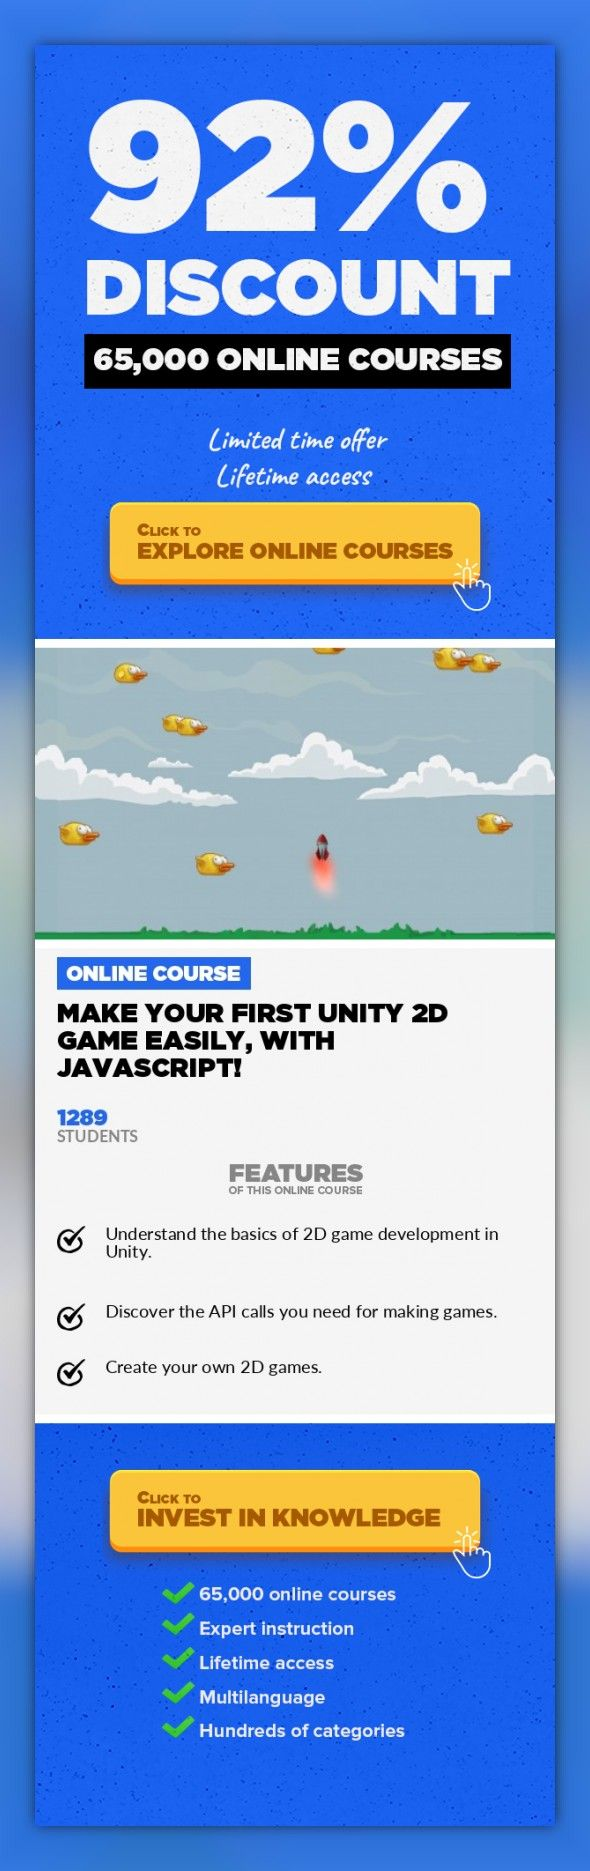 Make Your First Unity 2D Game Easily with Javascript Game